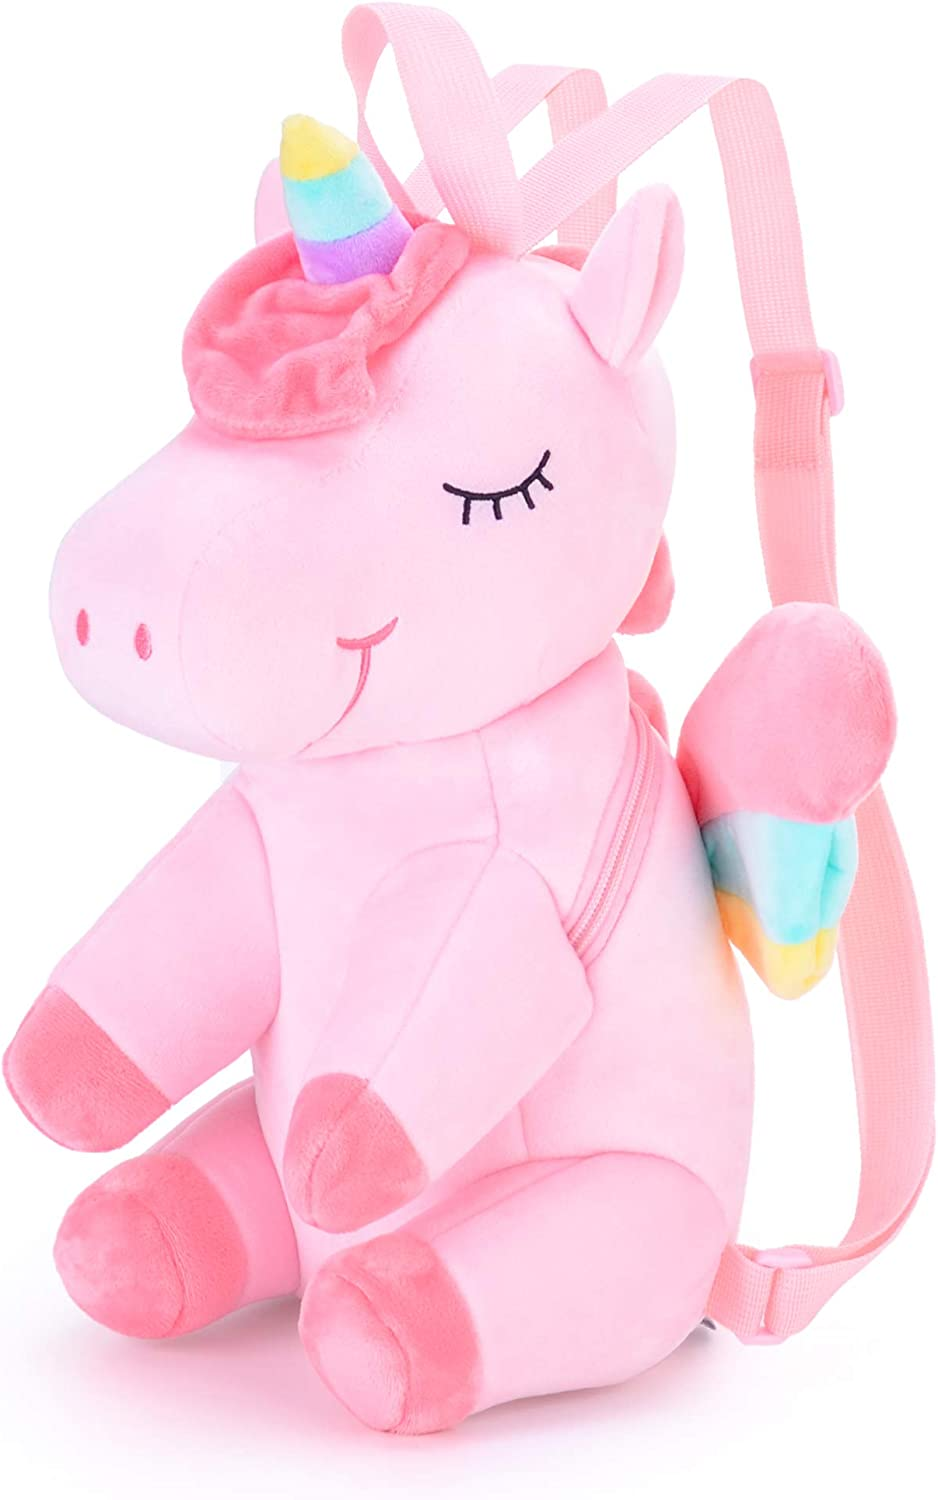 Gloveleya Unicorn Backpack for Girls Kids Backpack Plush Toy Gifts for Kids Baby Napkins Bag Snack backpack Pink 13 Inches